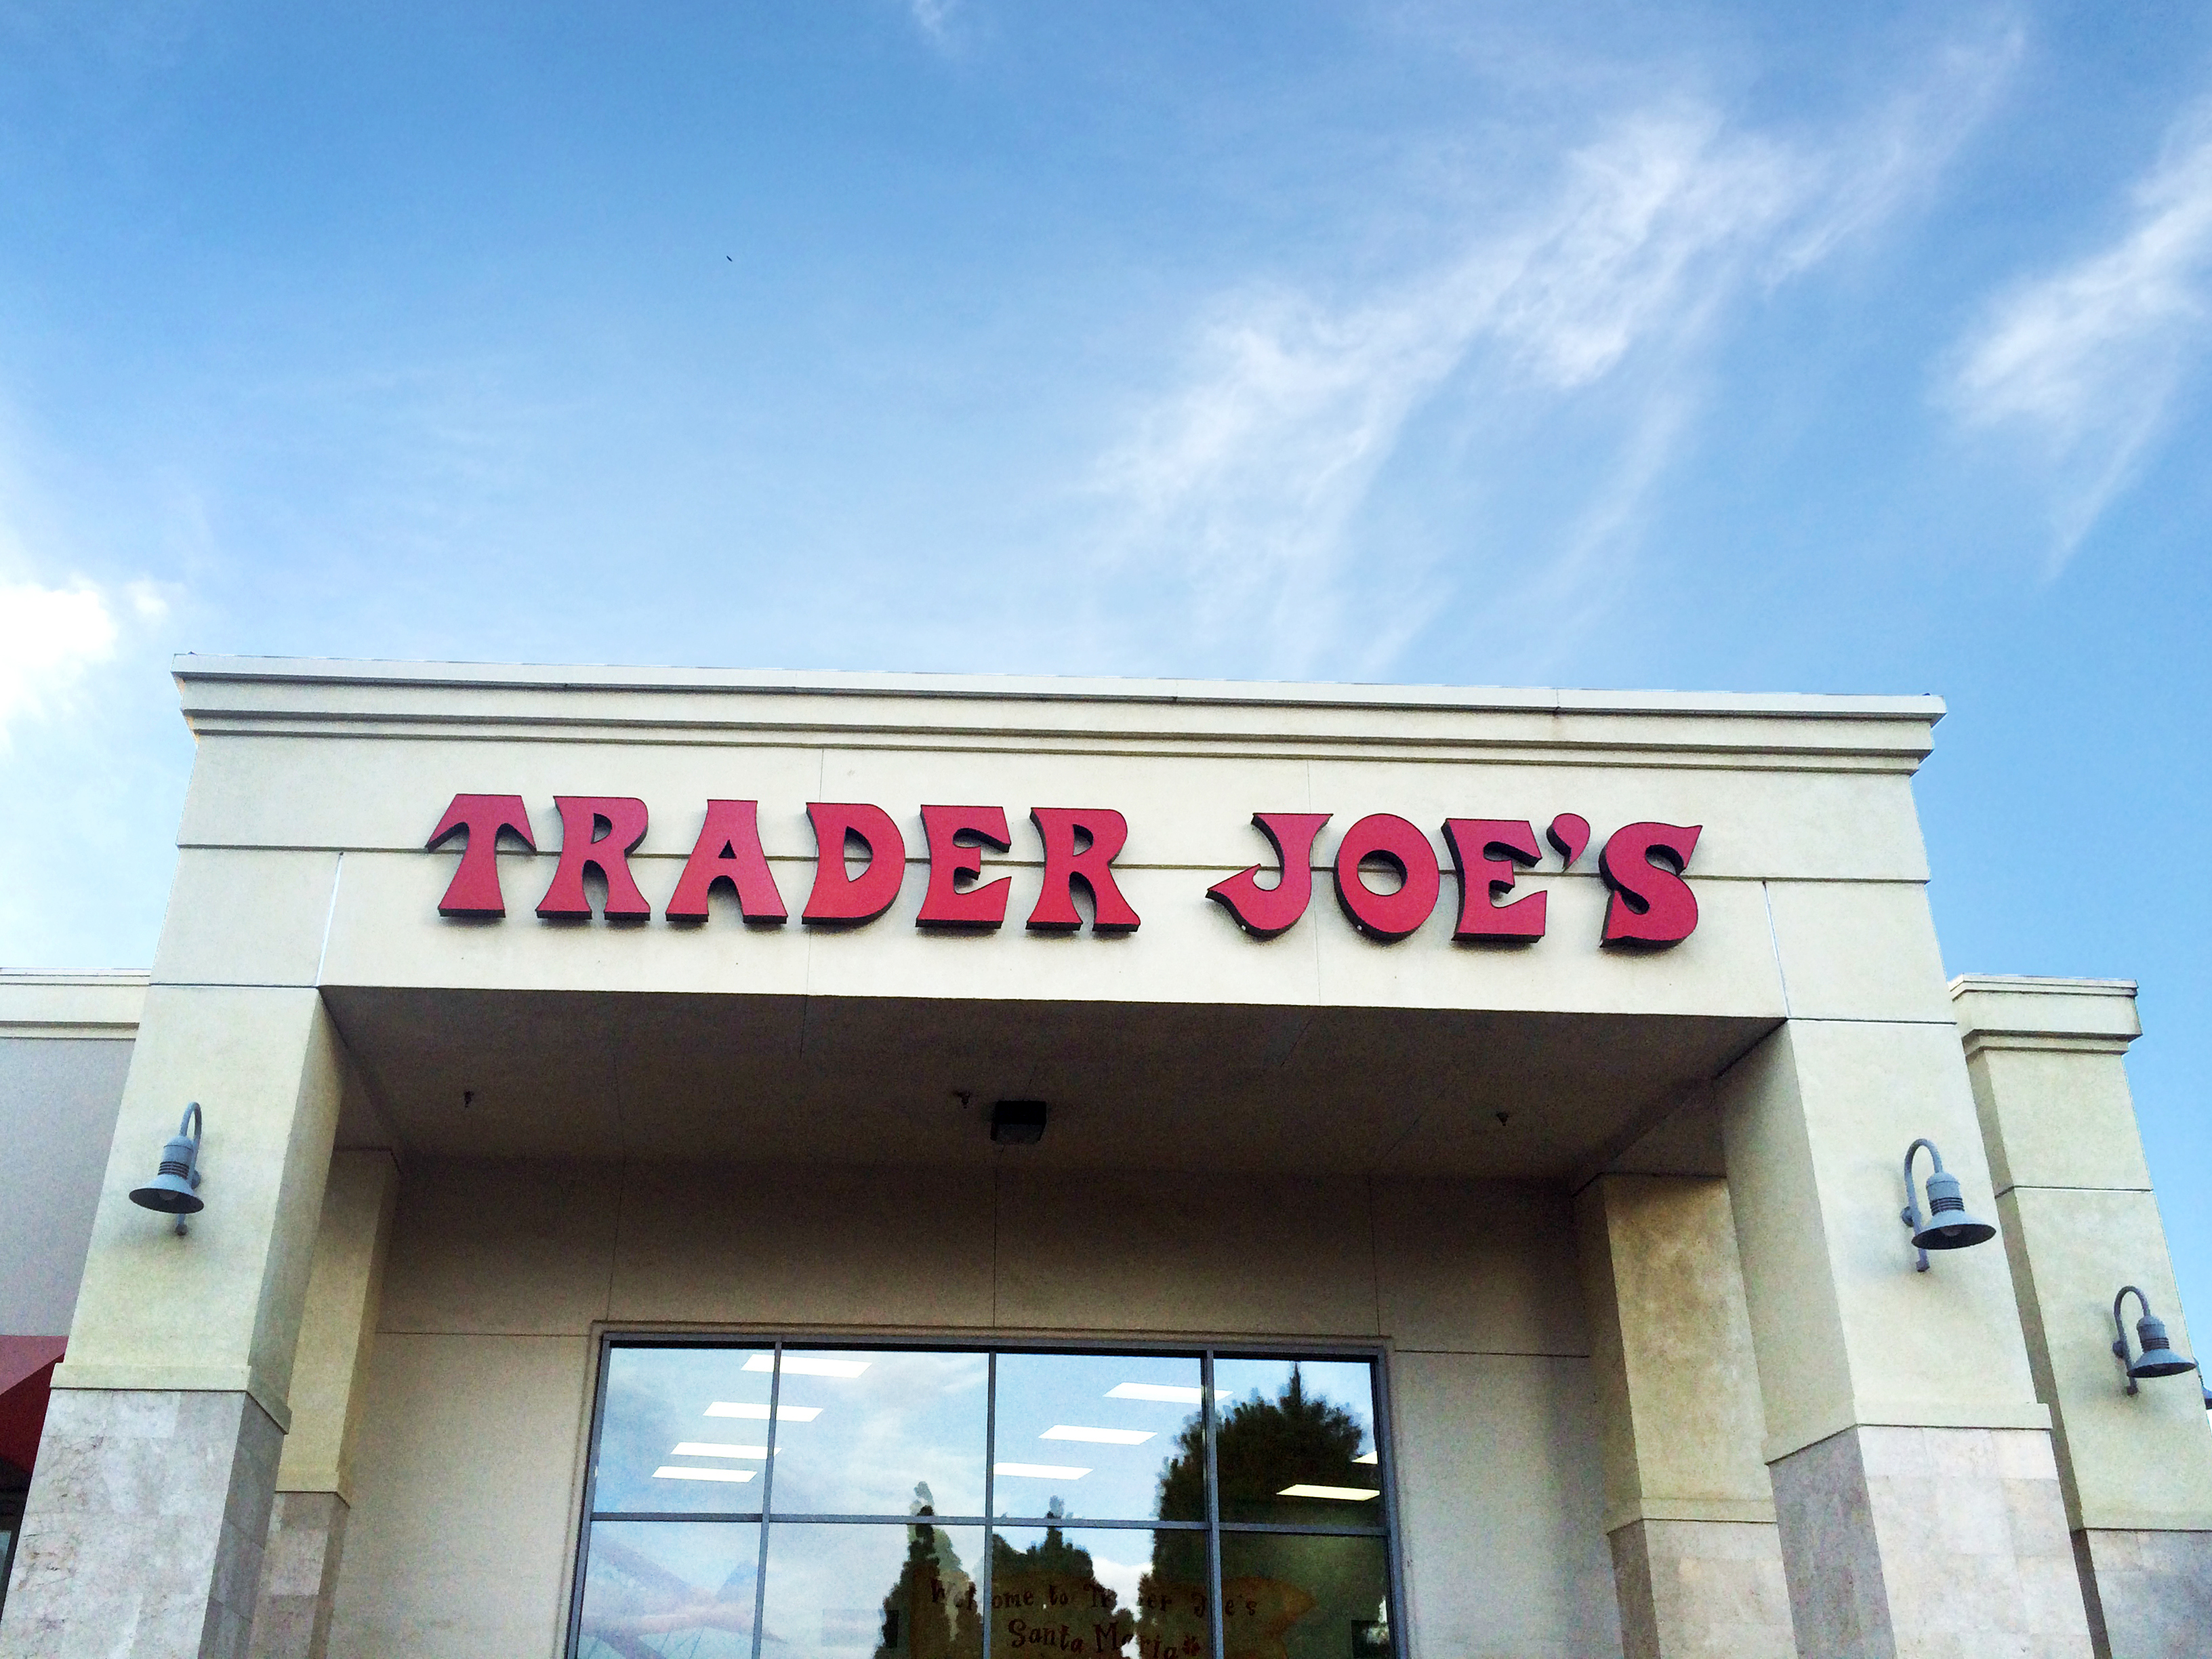 A Trader Joe's store in Santa Maria, Calif.